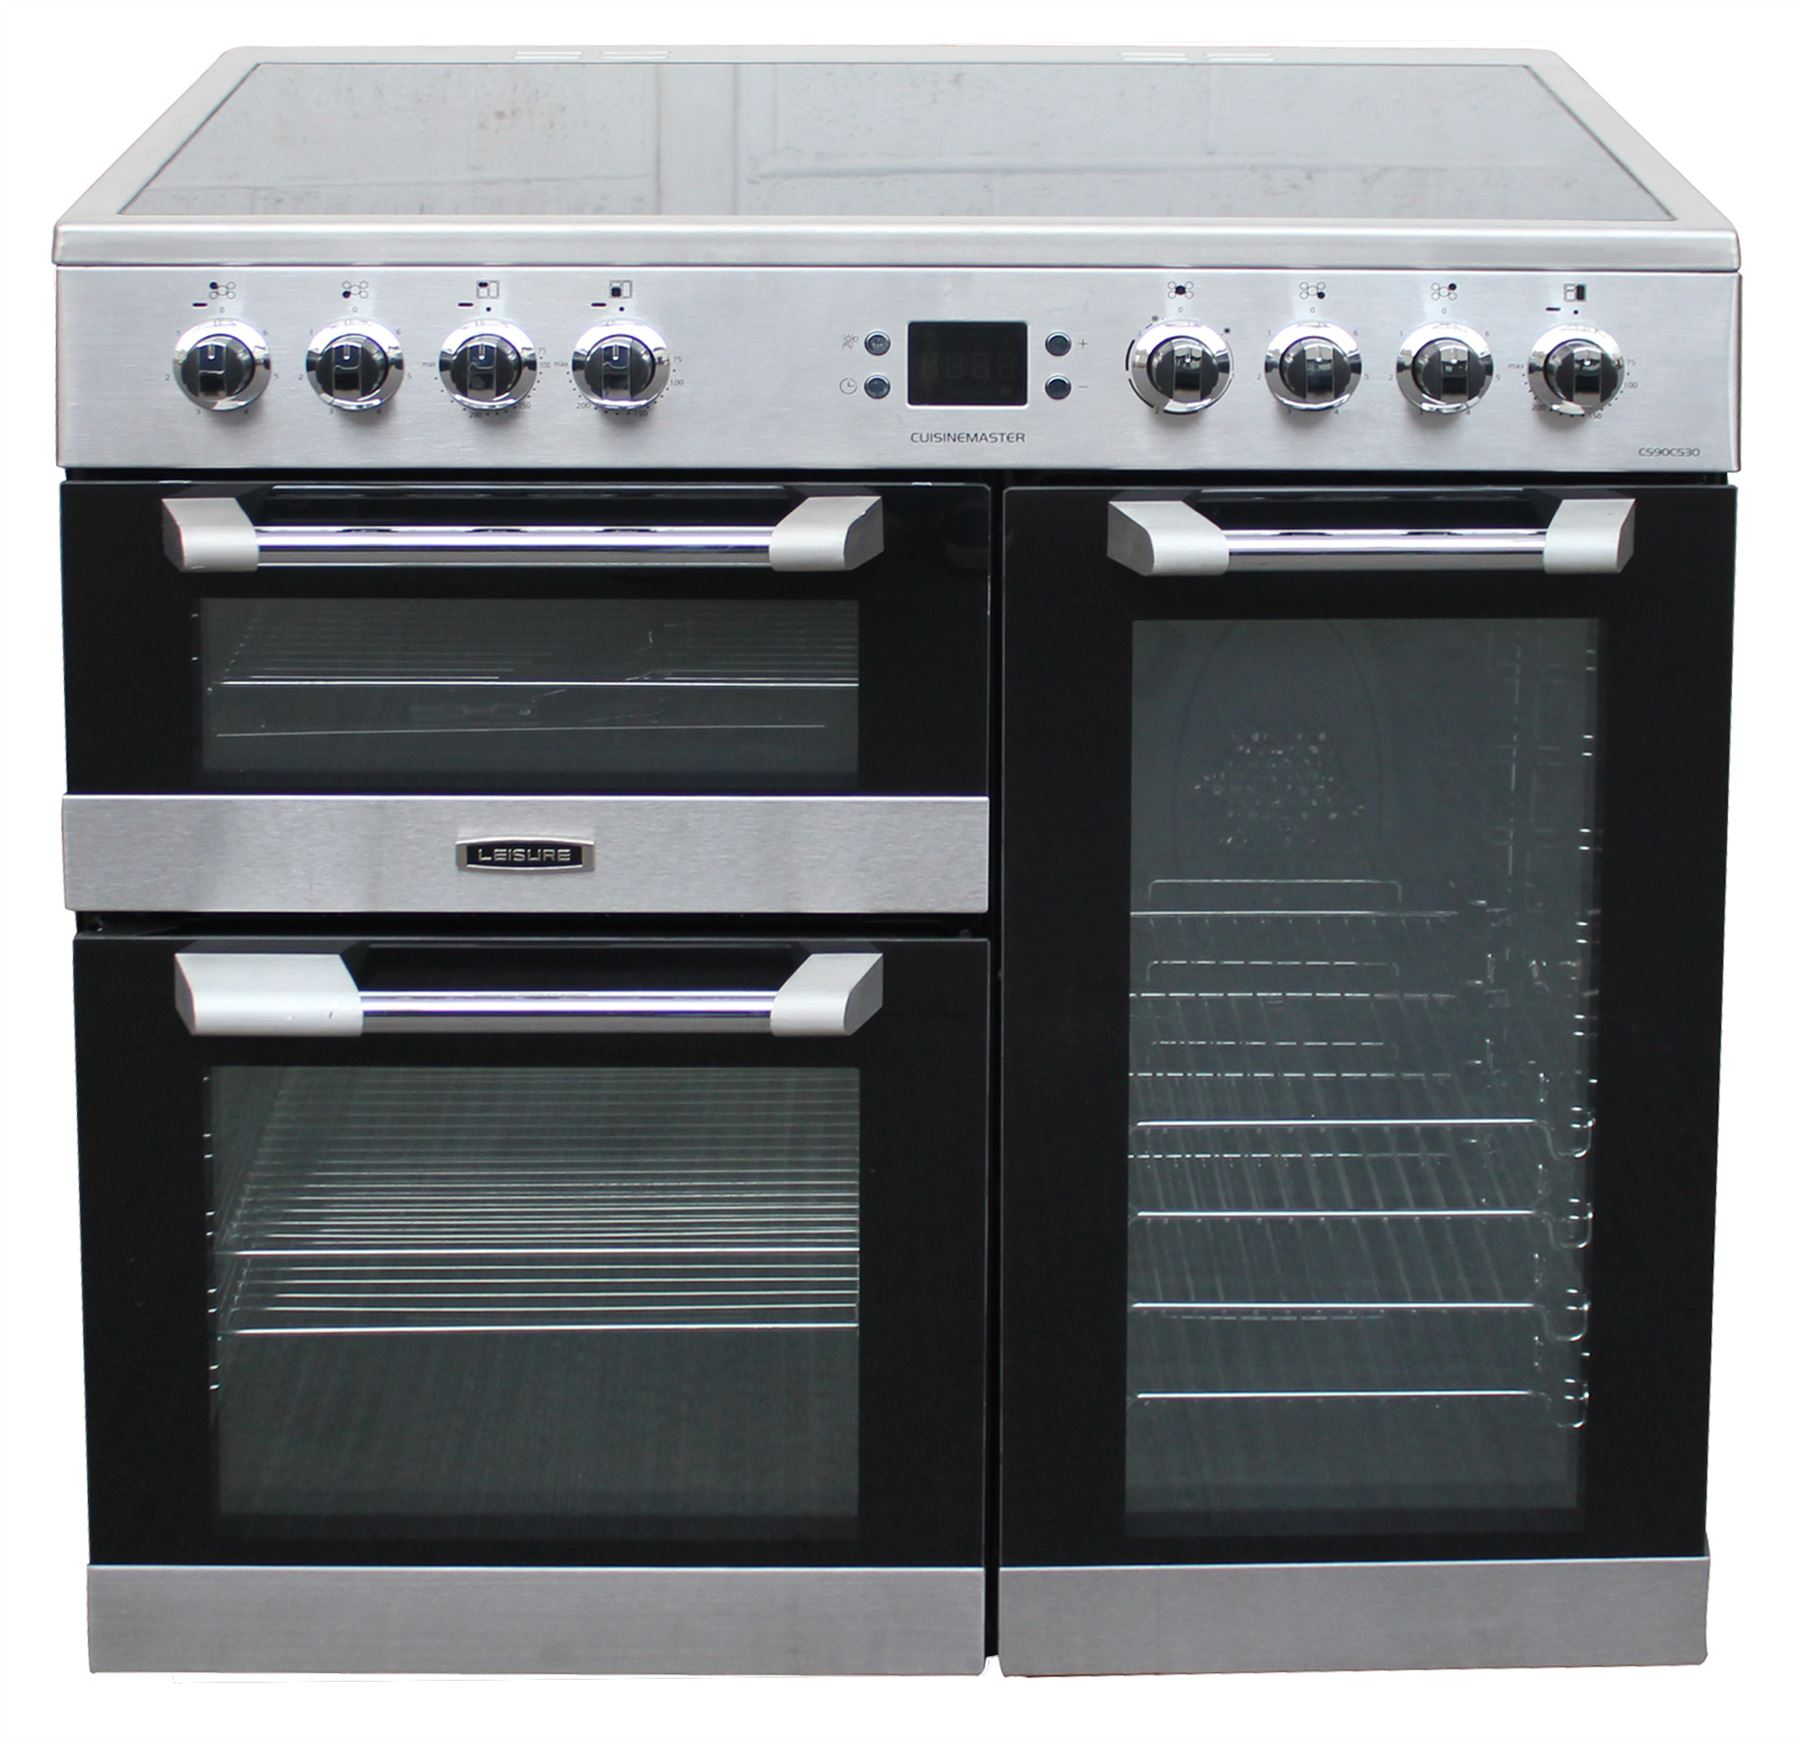 Leisure 90cm Electric Range Cooker Cs90c530x In Stainless